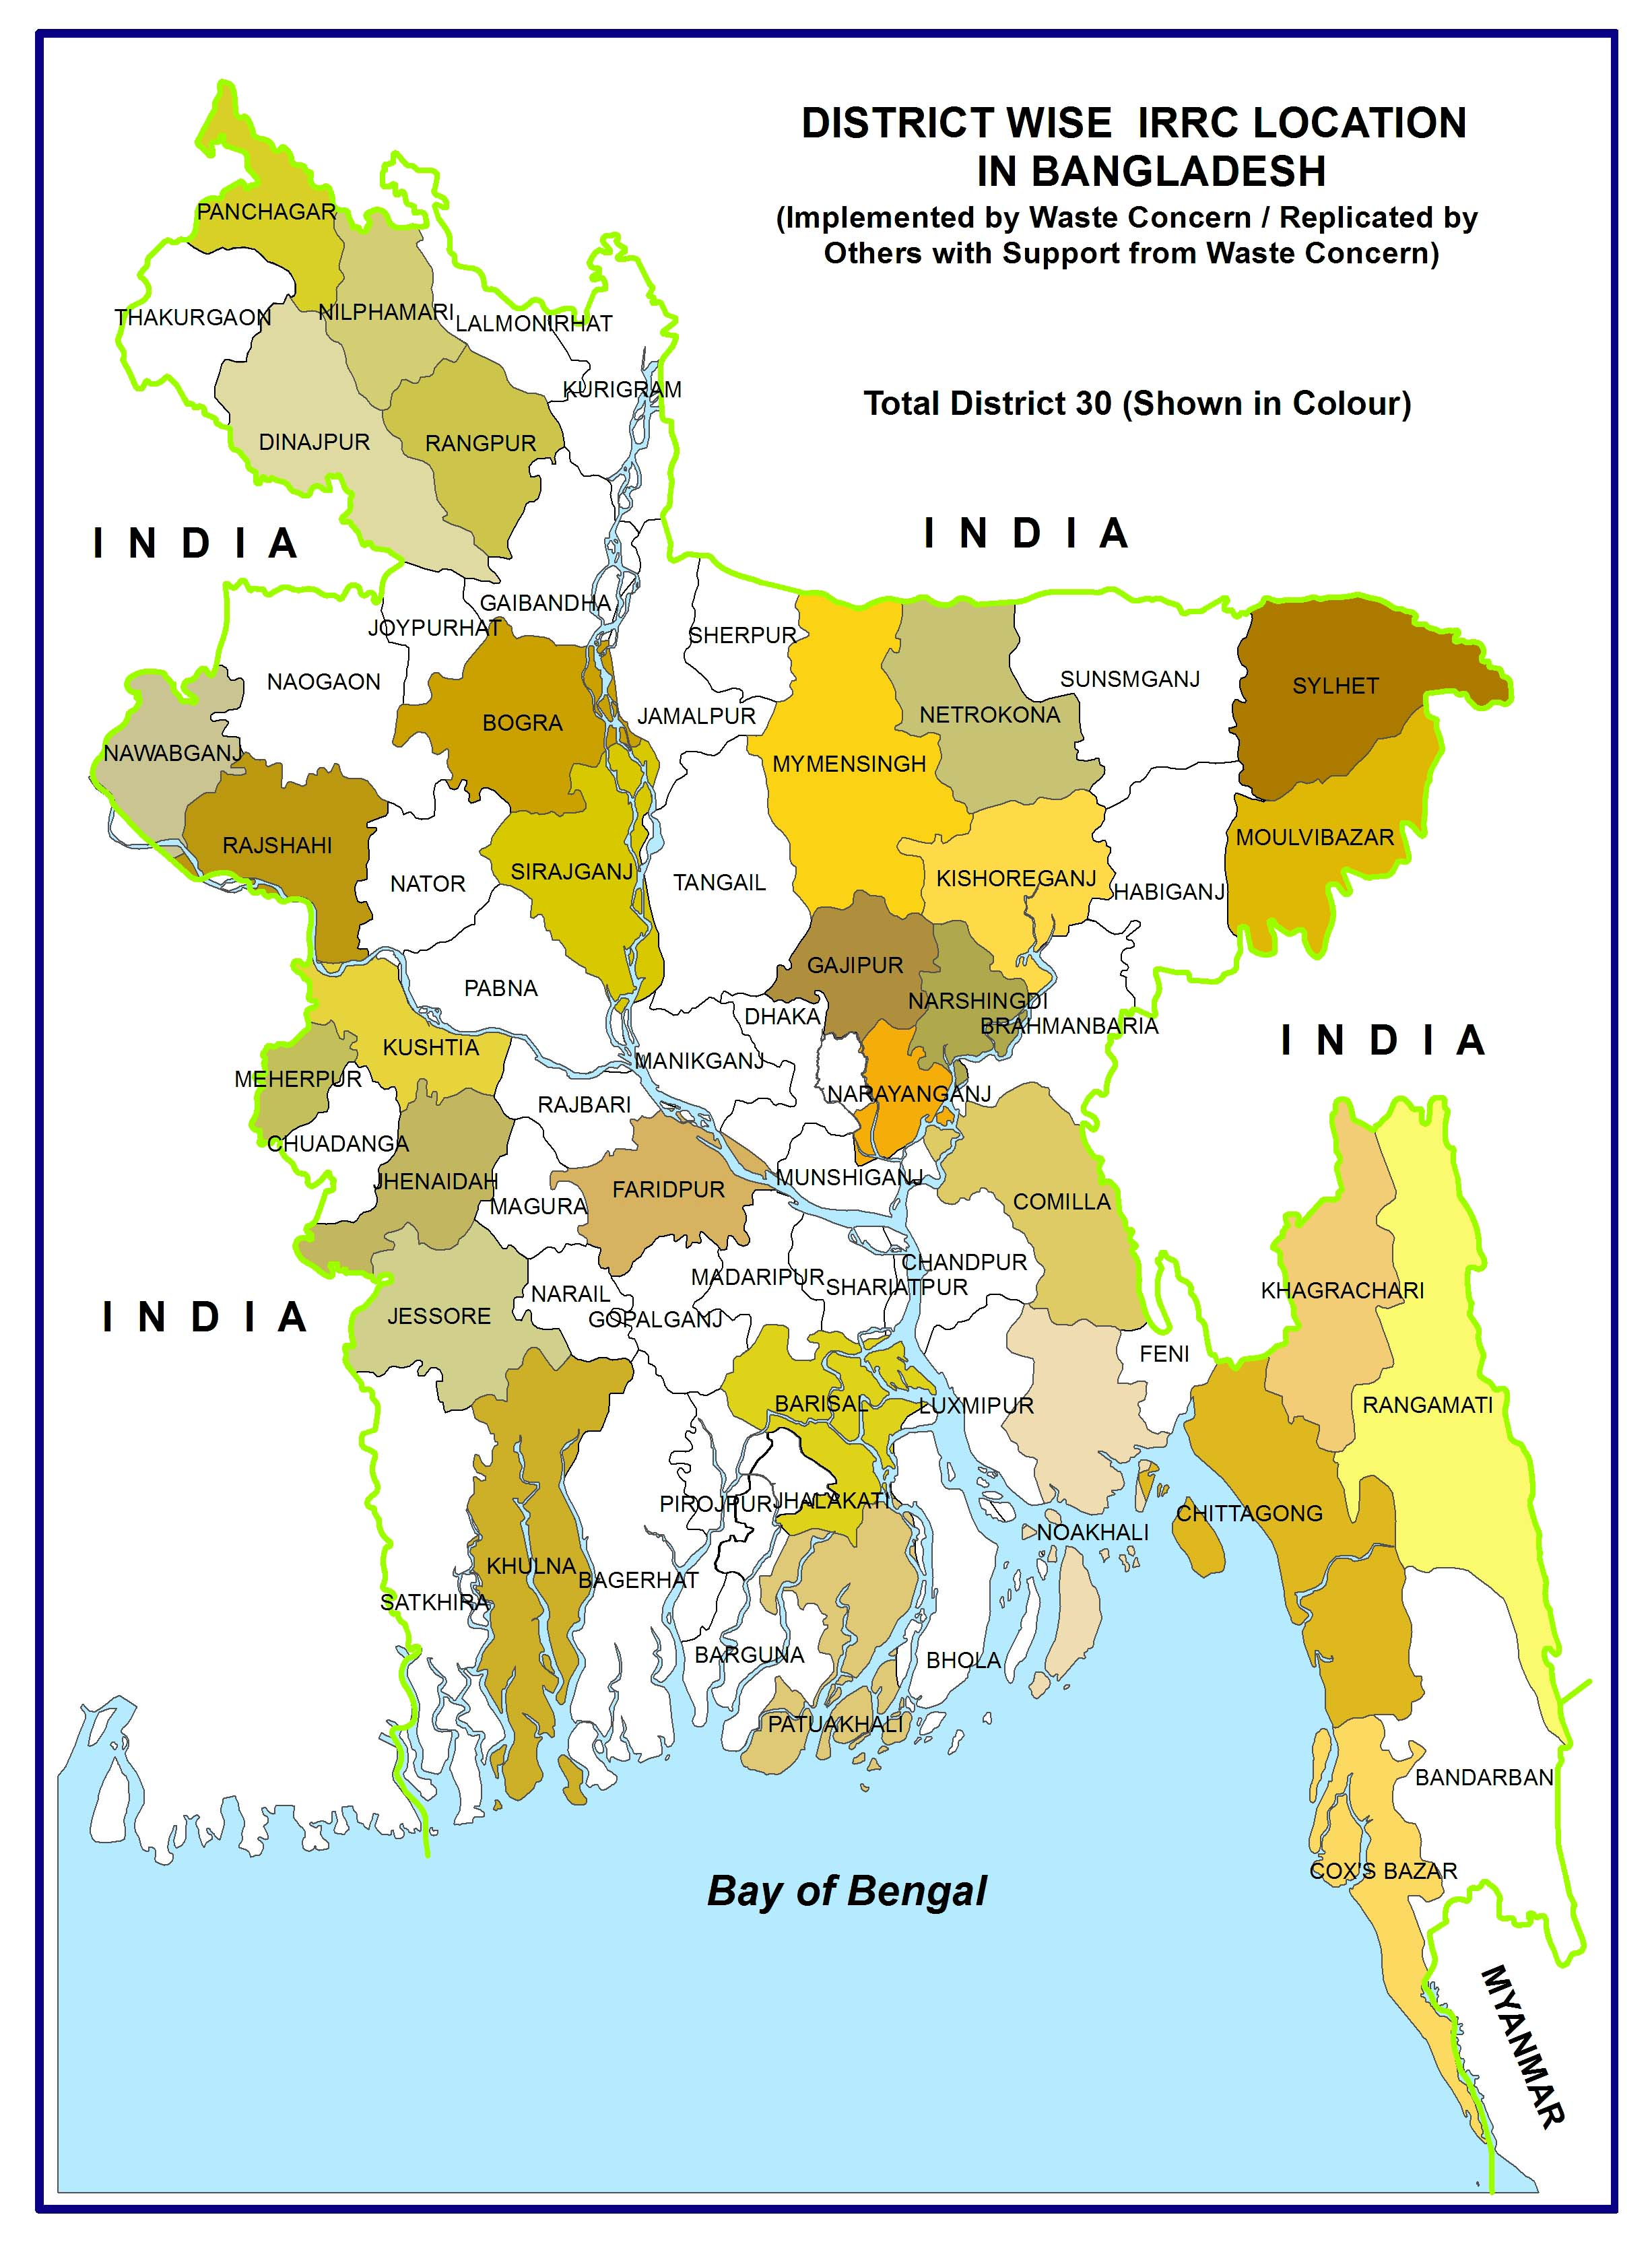 District Wise IRRC Location in Bangladesh (1)